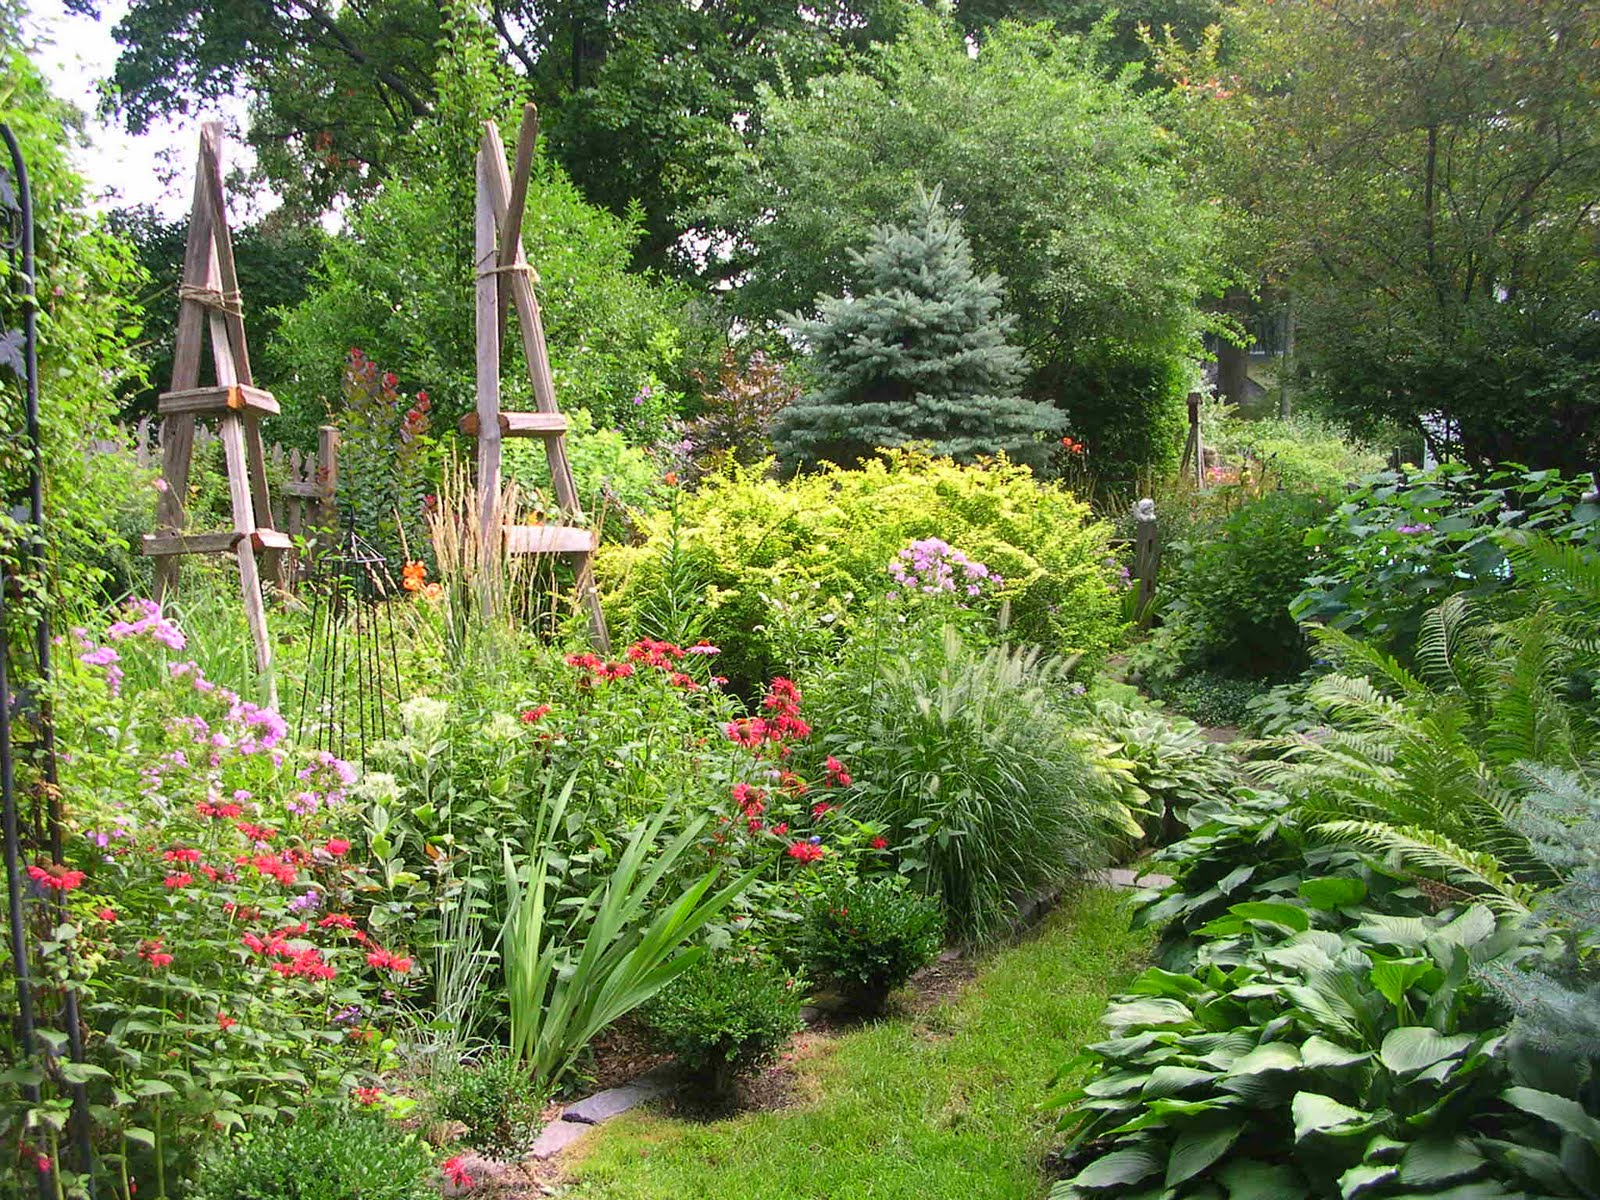 Woodstock IL Garden Club Blog: August Garden Of The Month